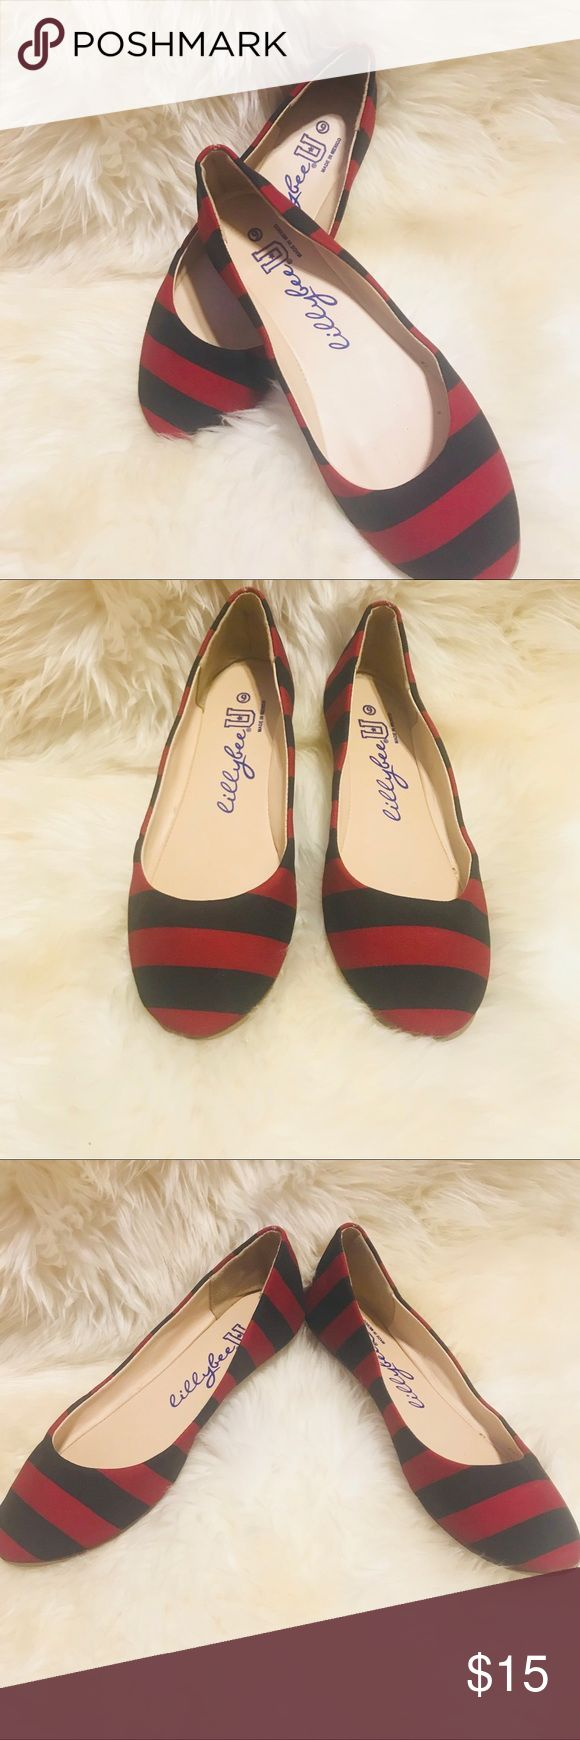 *5 FOR $25* LillyBee Striped Ballet Flats *5 for $25* Add 5 qualifying items to a bundle, Use offer button, Offer $25 & I will accept! LillyBee Stripe Ballet Flats, Size 9, Black and Maroon / Burgundy Strips, Only Worn a few times, In Excellent Used Condition! LillyBee Shoes Flats & Loafers